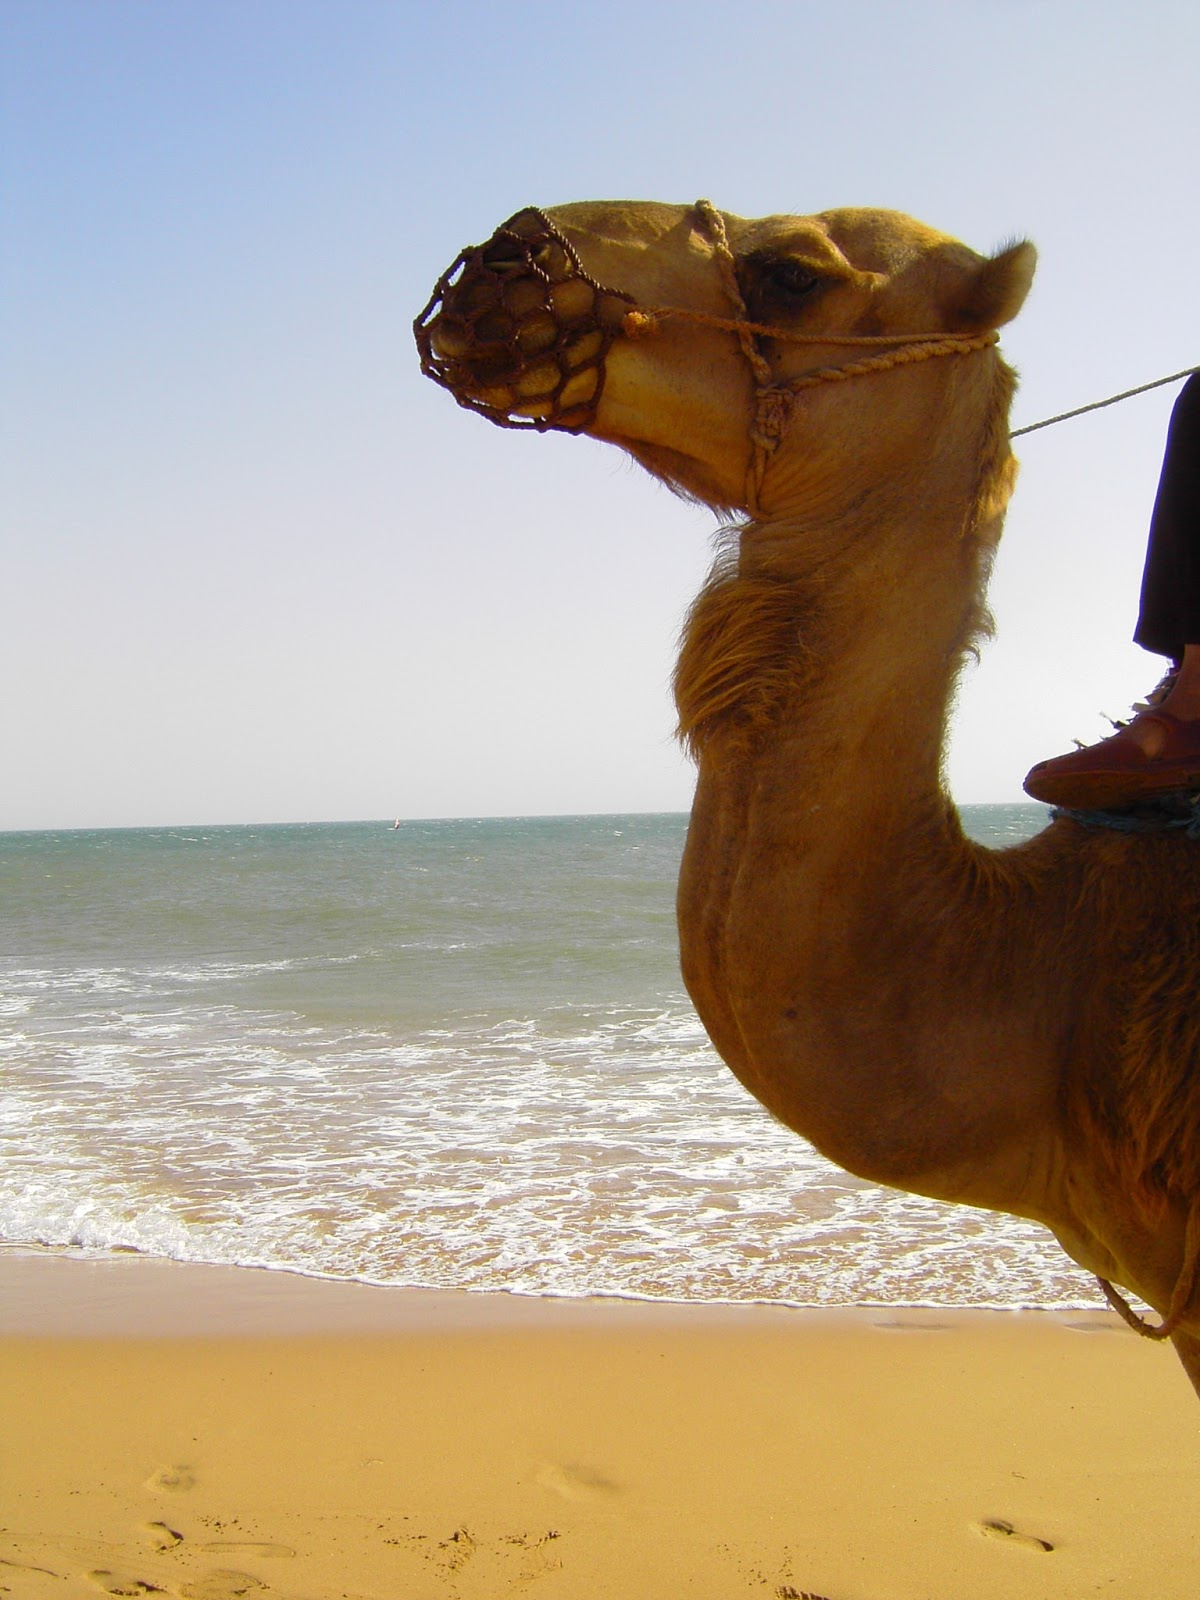 Picture of a camels long neck.